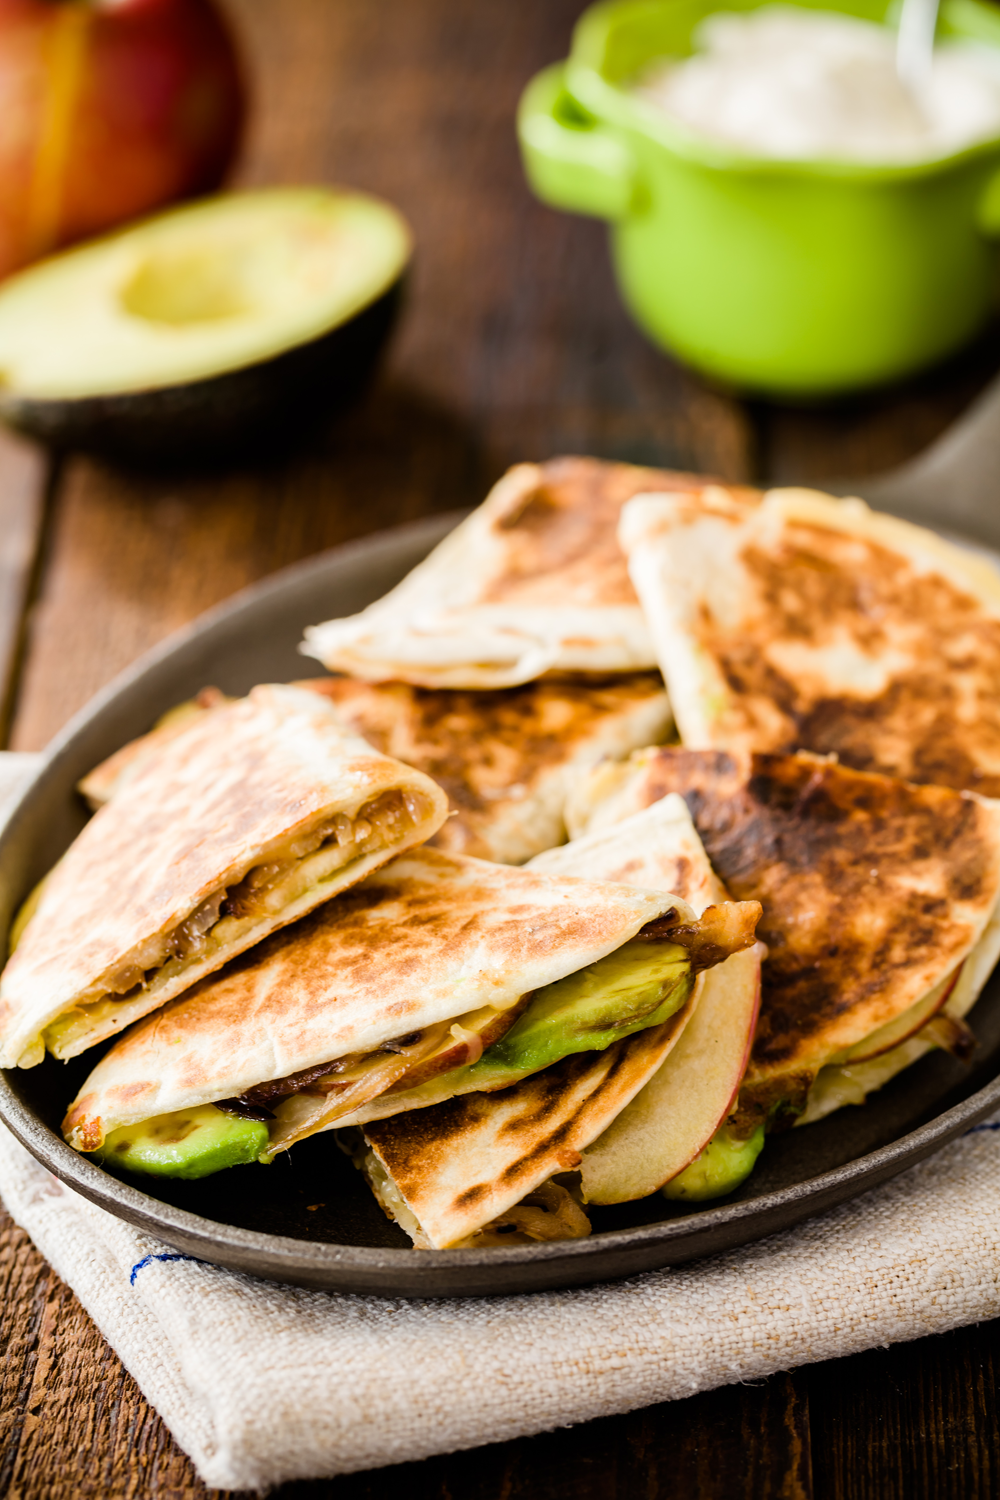 Apple Avocado Quesadilla Bites